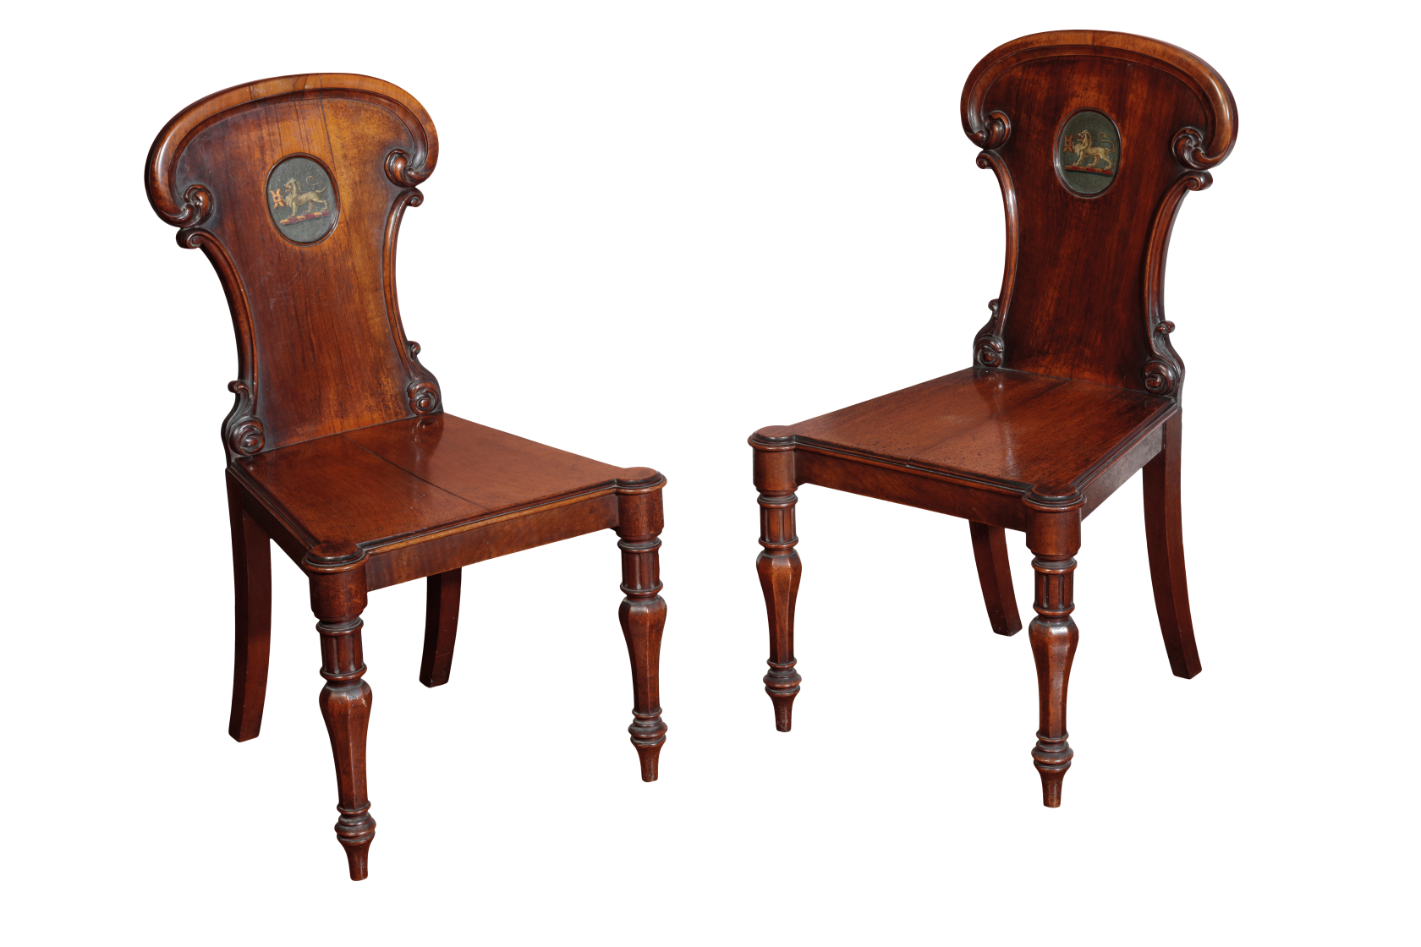 A PAIR OF LATE GEORGE III OR REGENCY SATINWOOD HALL CHAIRS, BY GILLOWS,